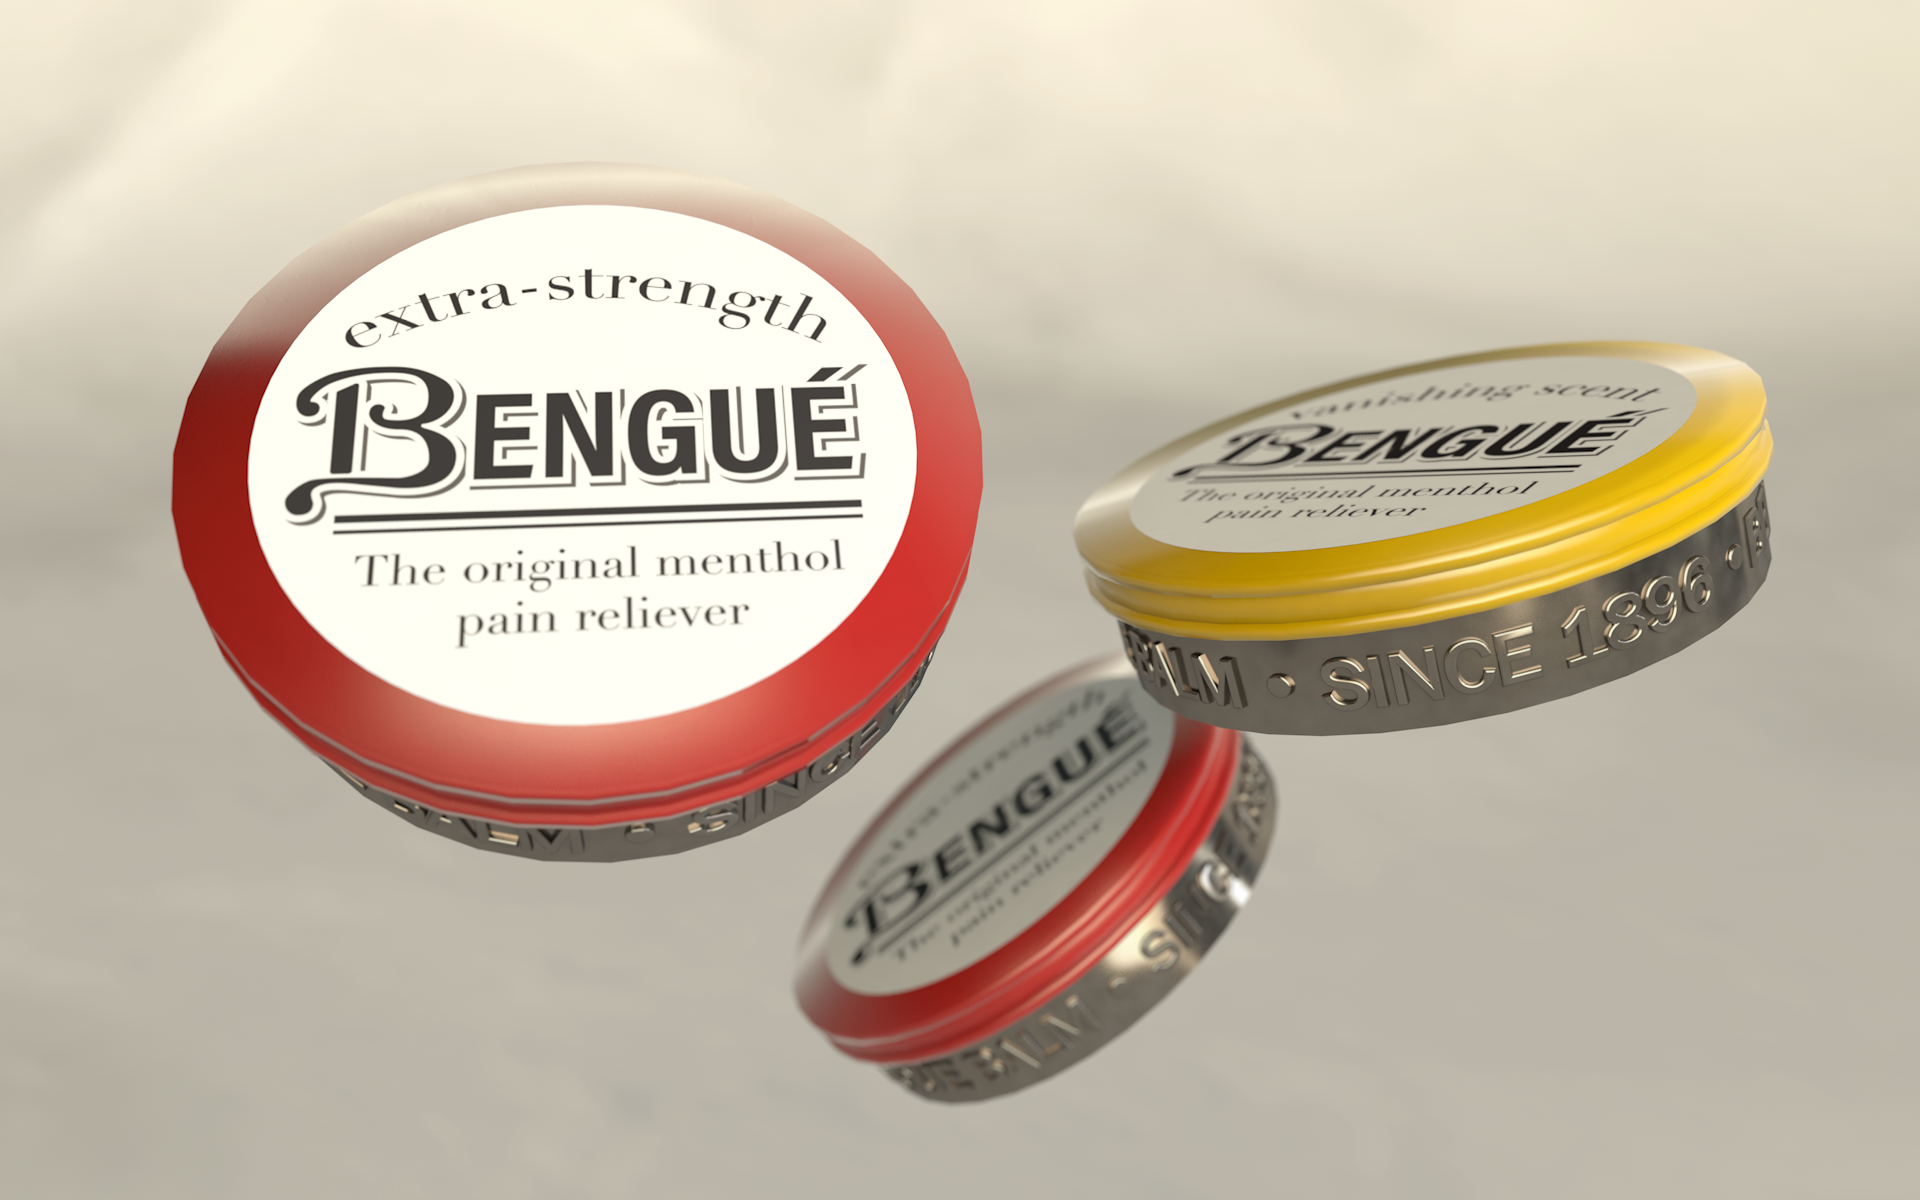 We also created a new balm option that comes in a small, portable tin. Rendering by Zak Vono.